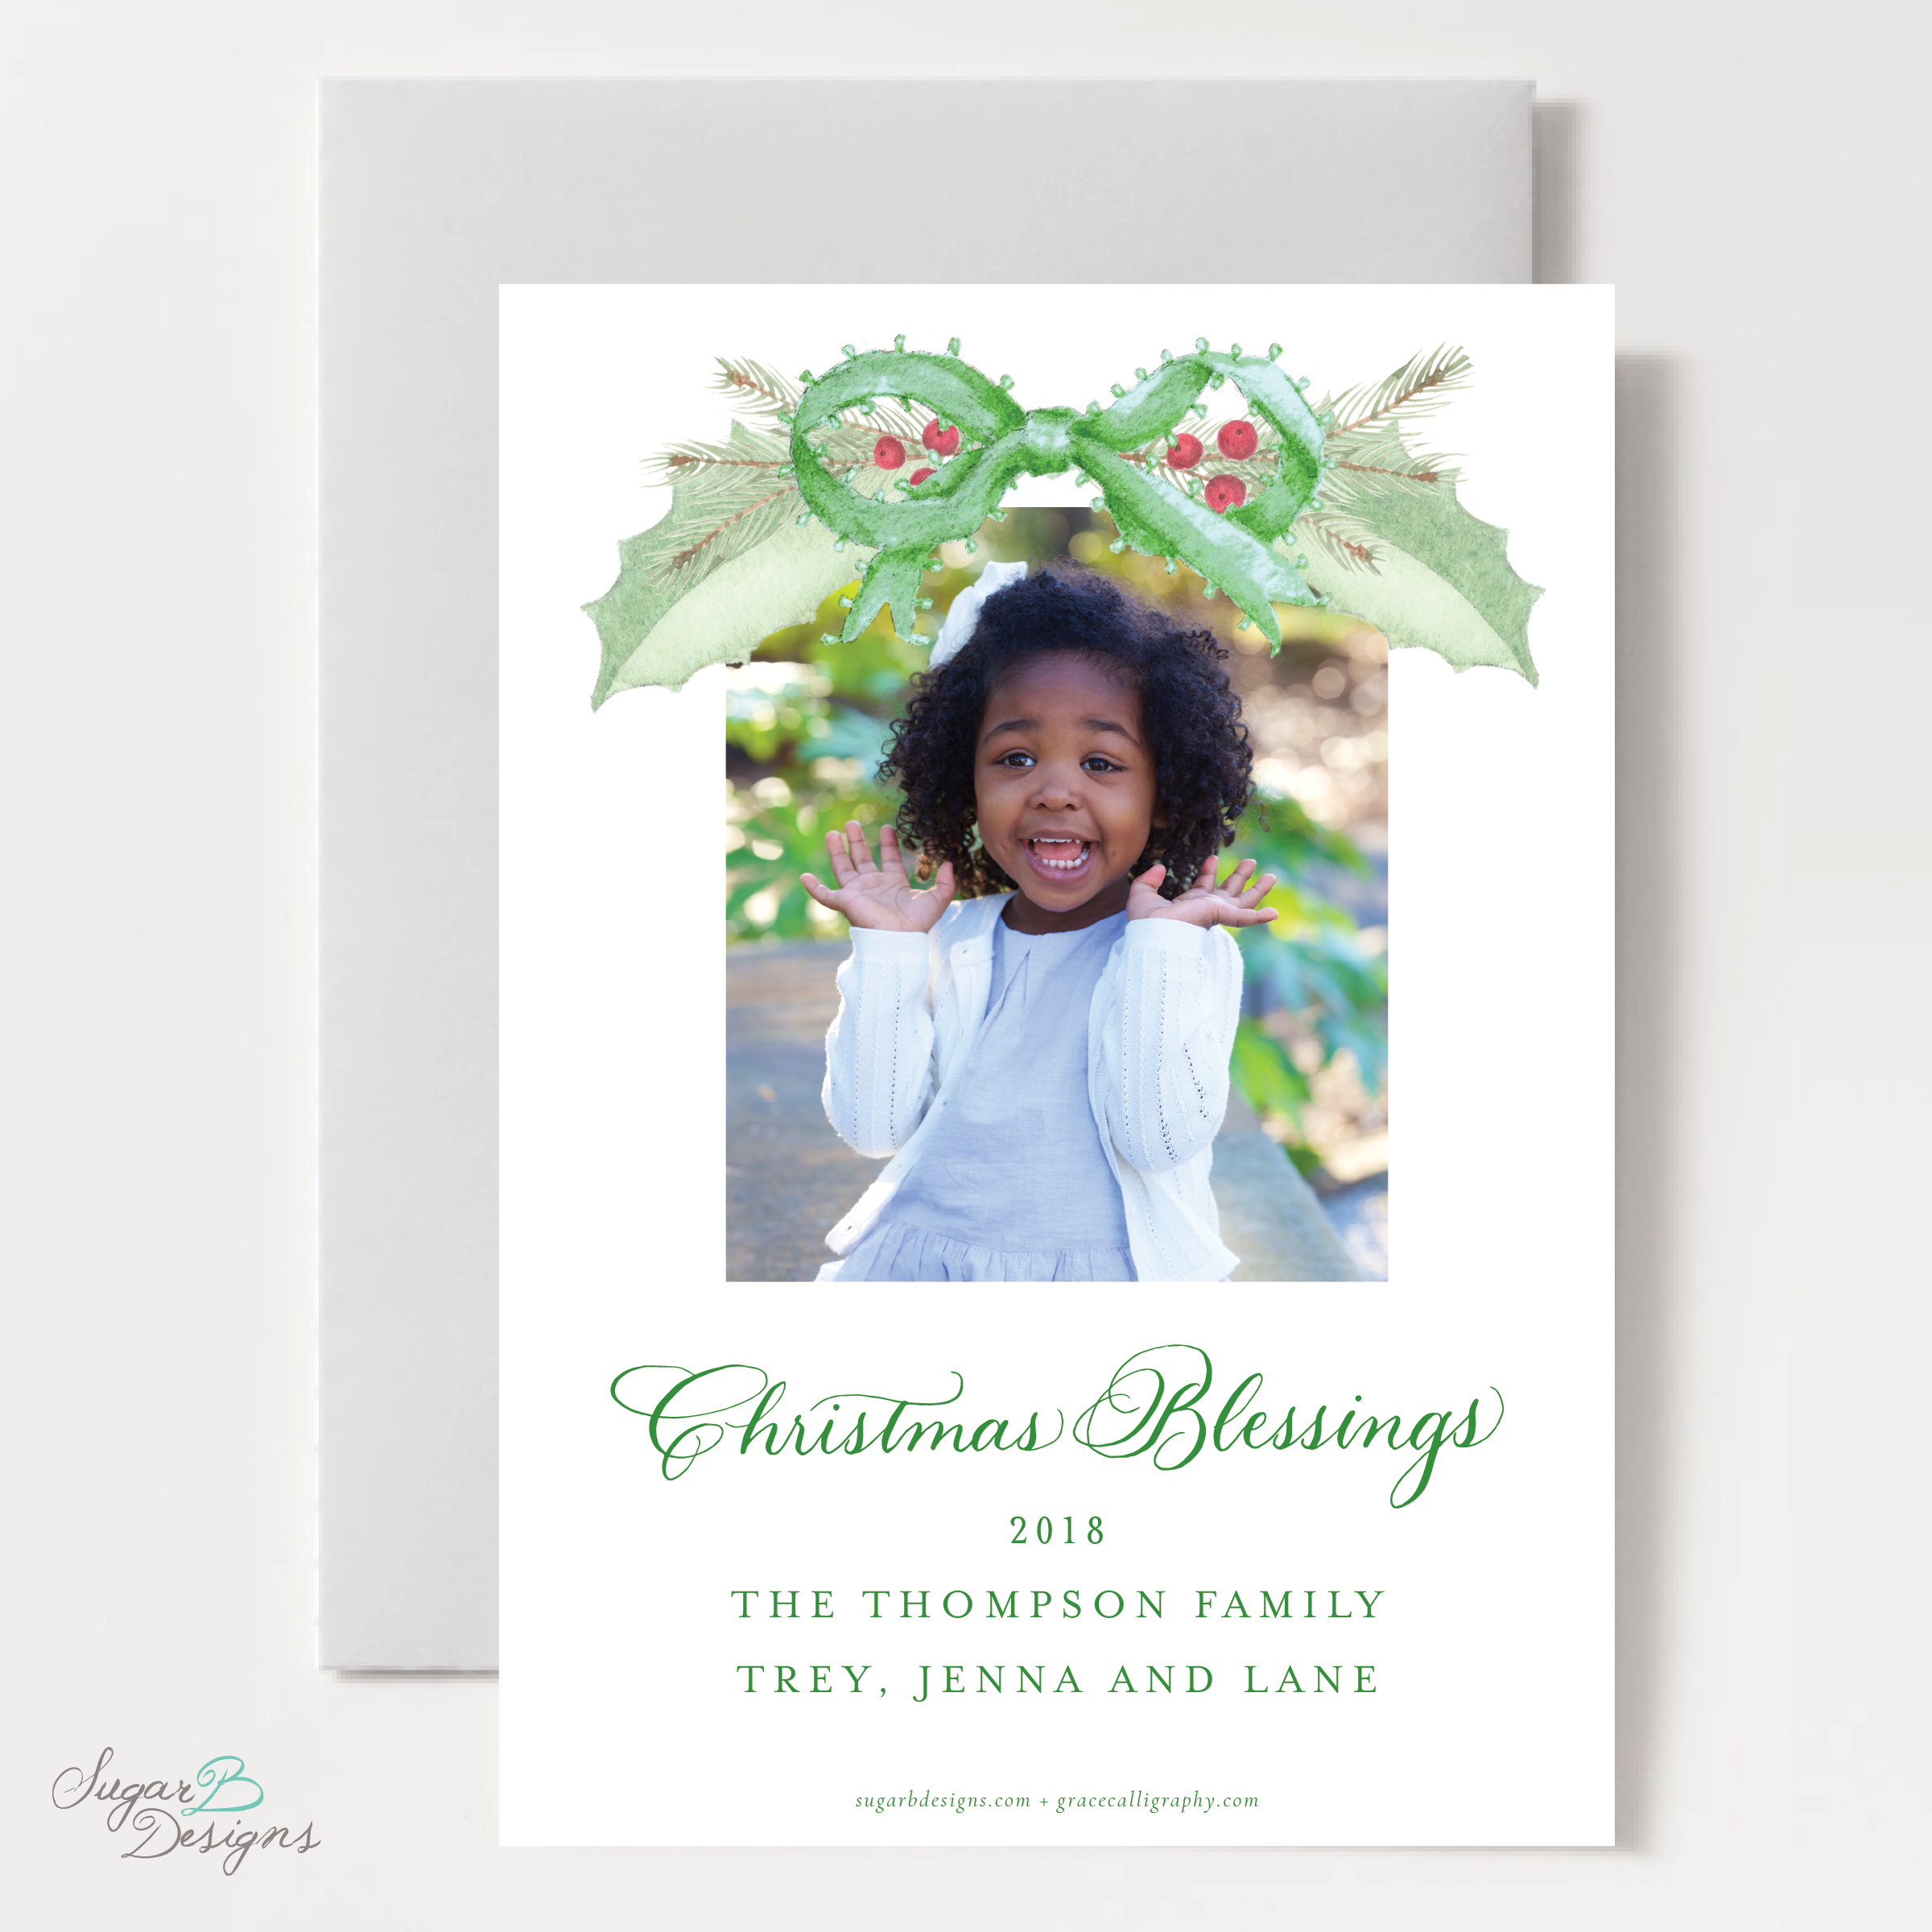 Collins Green Christmas Card back by Sugar B Designs.png